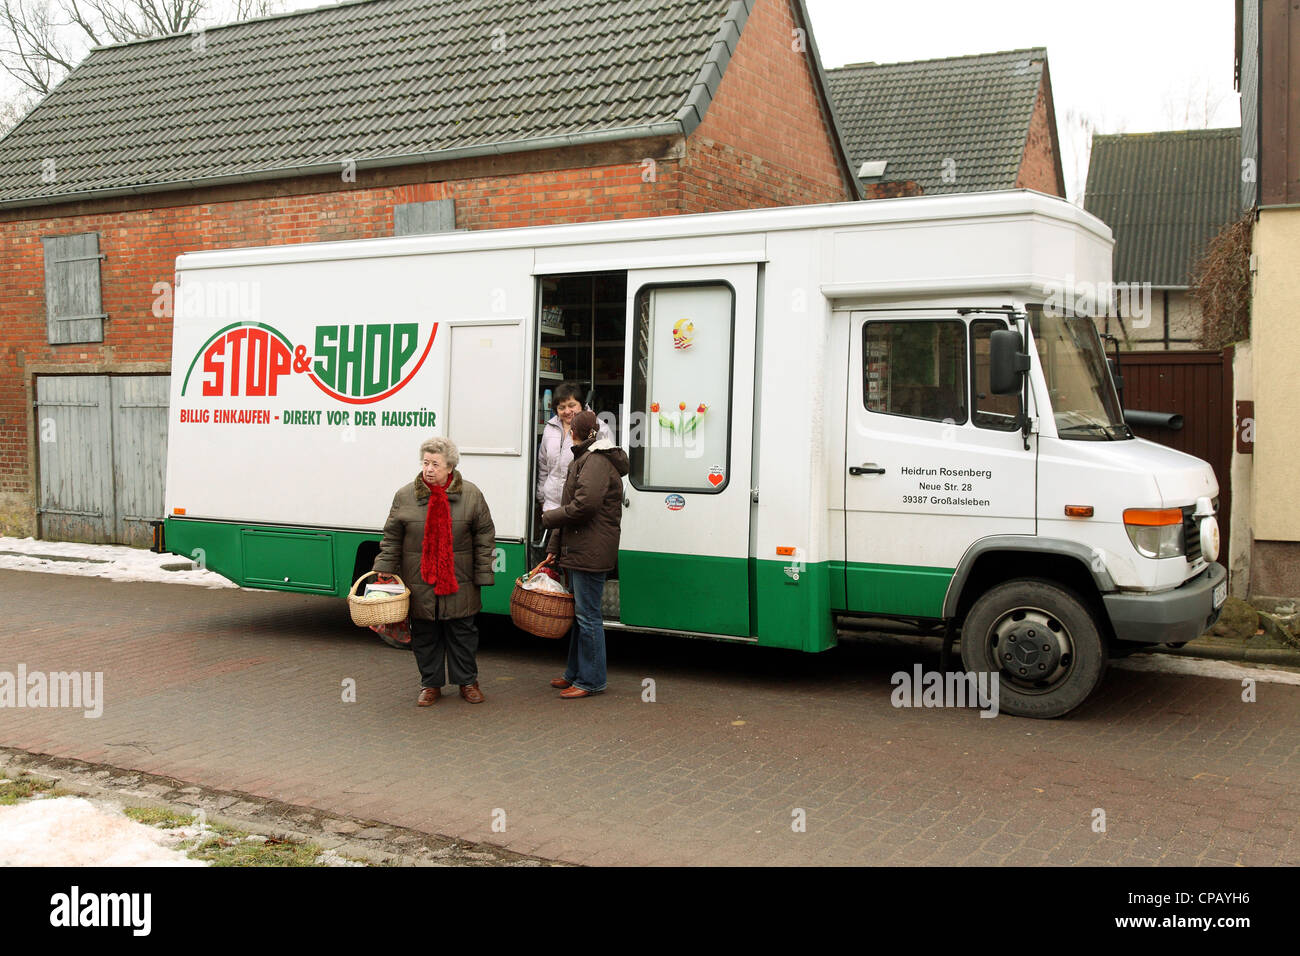 A private mobile grocery store hermsdorf germany stock for Mobili convenienti